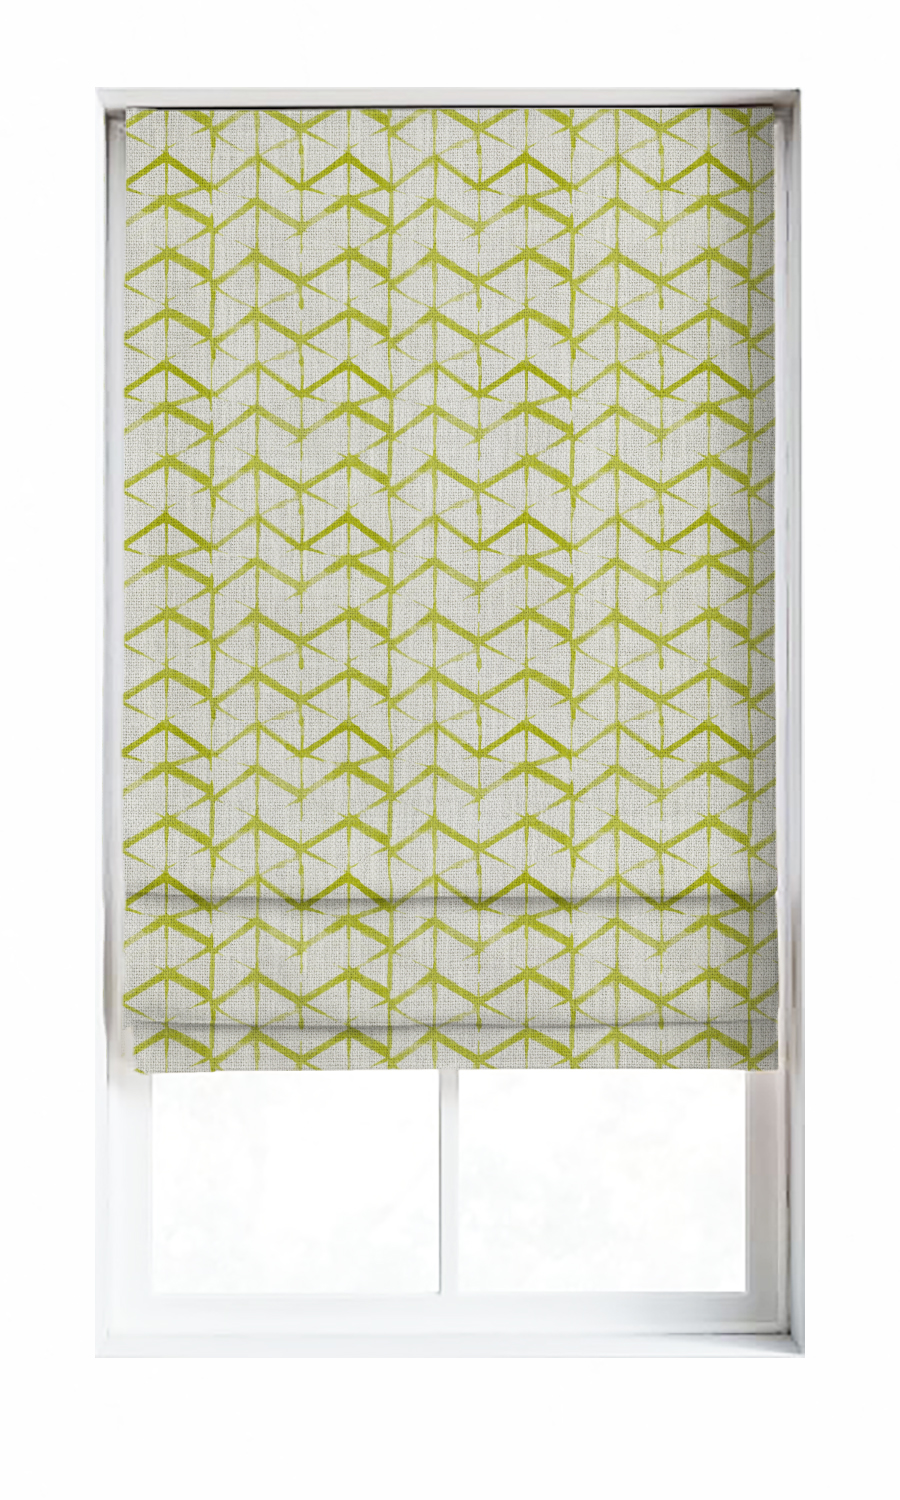 Zig Zag Printed Custom Roman Blinds For Bedroom